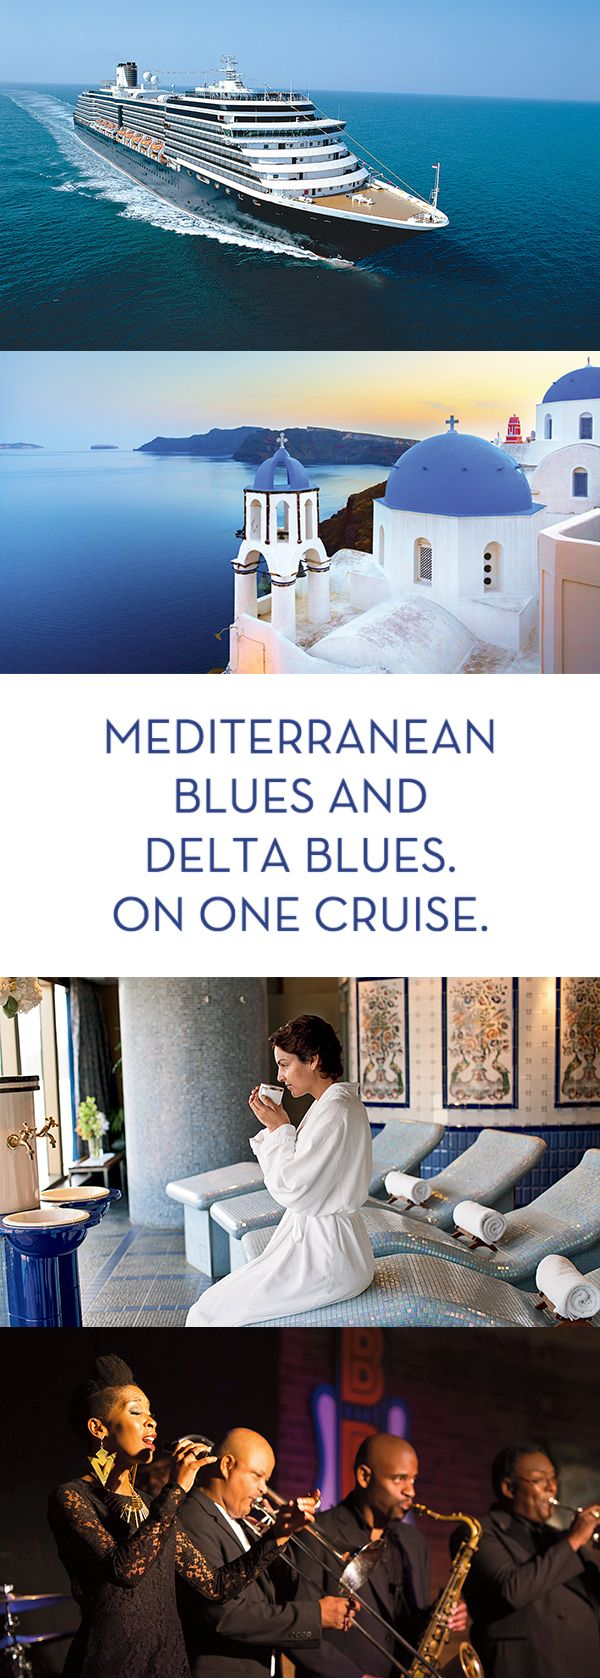 With Holland America Line, you can explore the magical Greek Islands, enchanting Barcelona and the soulful sounds of the Mississippi Delta. Because we're the only cruise line that combines the wonders of Europe wih the onboard entertainment of B.B. King's Blues Club. Unforgettable days and nights come alive at over 400 ports of call worldwide, only on Holland America Line.